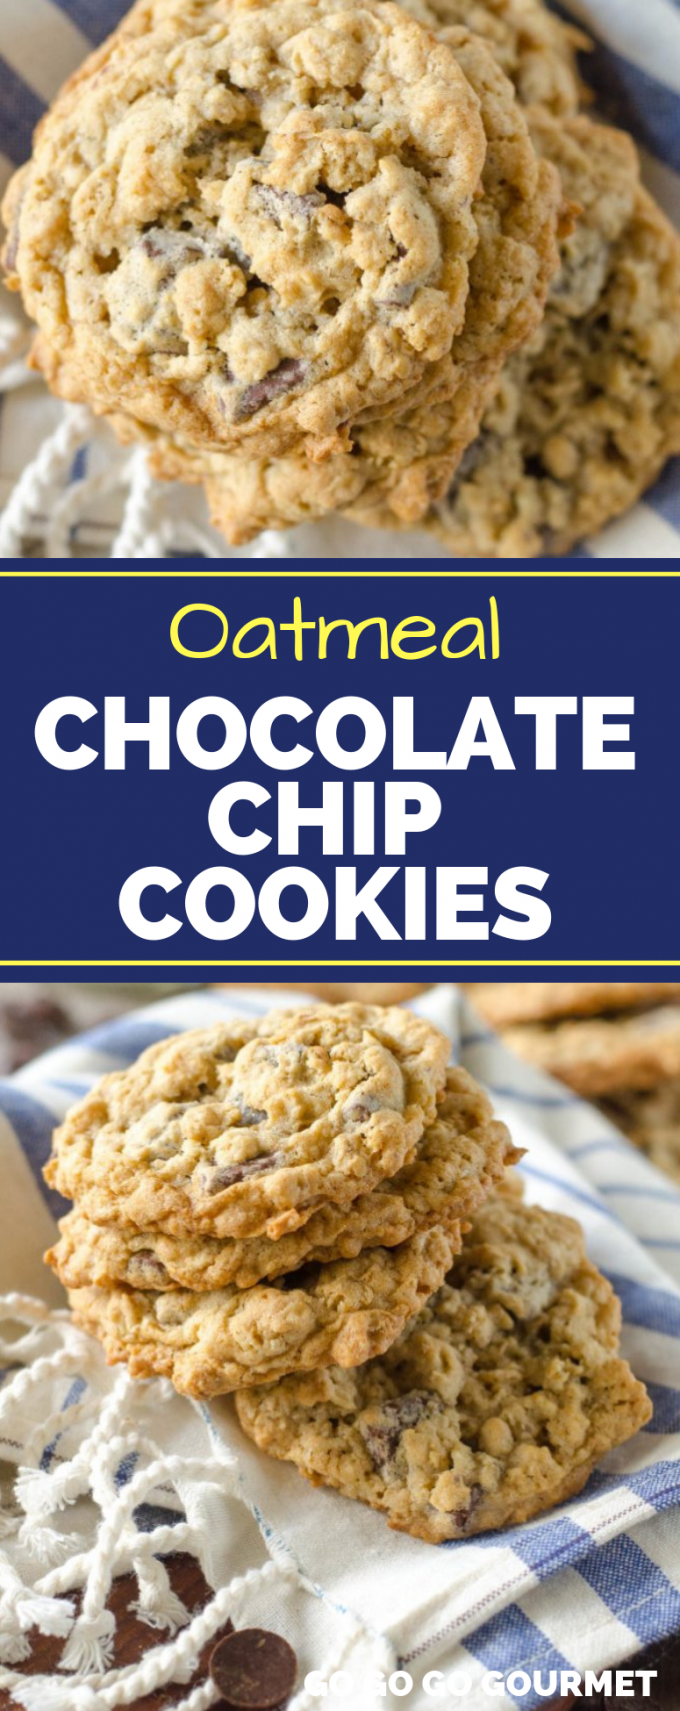 These easy, chewy Oatmeal Chocolate Chip Cookies are the best! These soft cookies are even better than the Pioneer Woman recipe! You could even take them up a notch with walnuts or peanut butter! #gogogogourmet #oatmealchocolatechipcookies #easycookierecipes #easydessertrecipes via @gogogogourmet